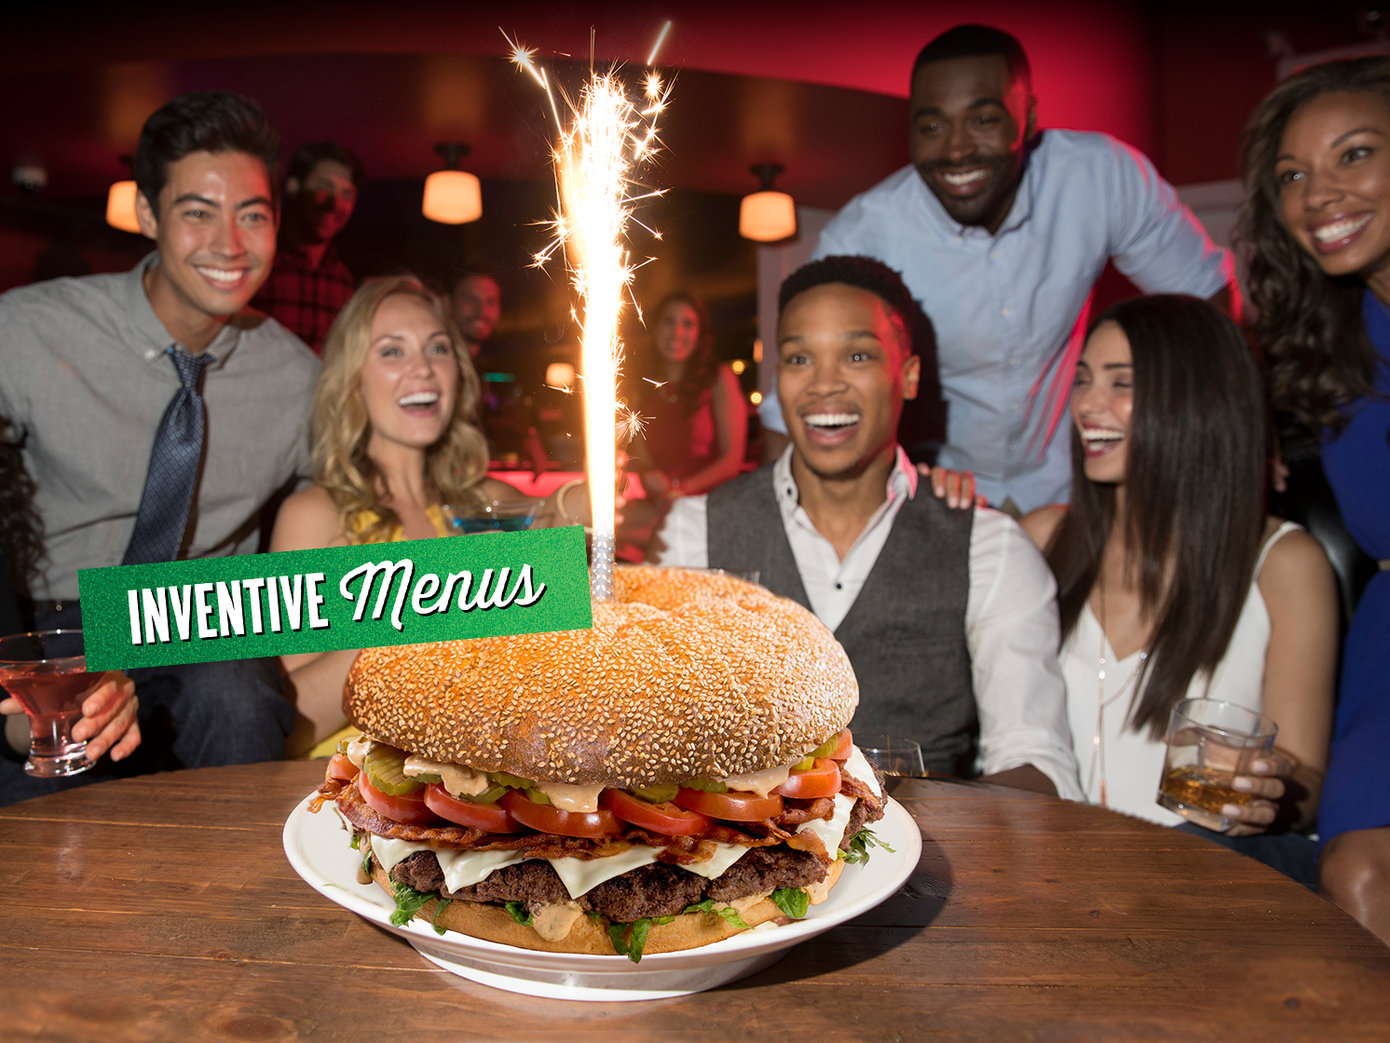 Group of young adults smiling at a large burger with a sparkler. On top is a strip of green foil that reads 'Inventive menus'